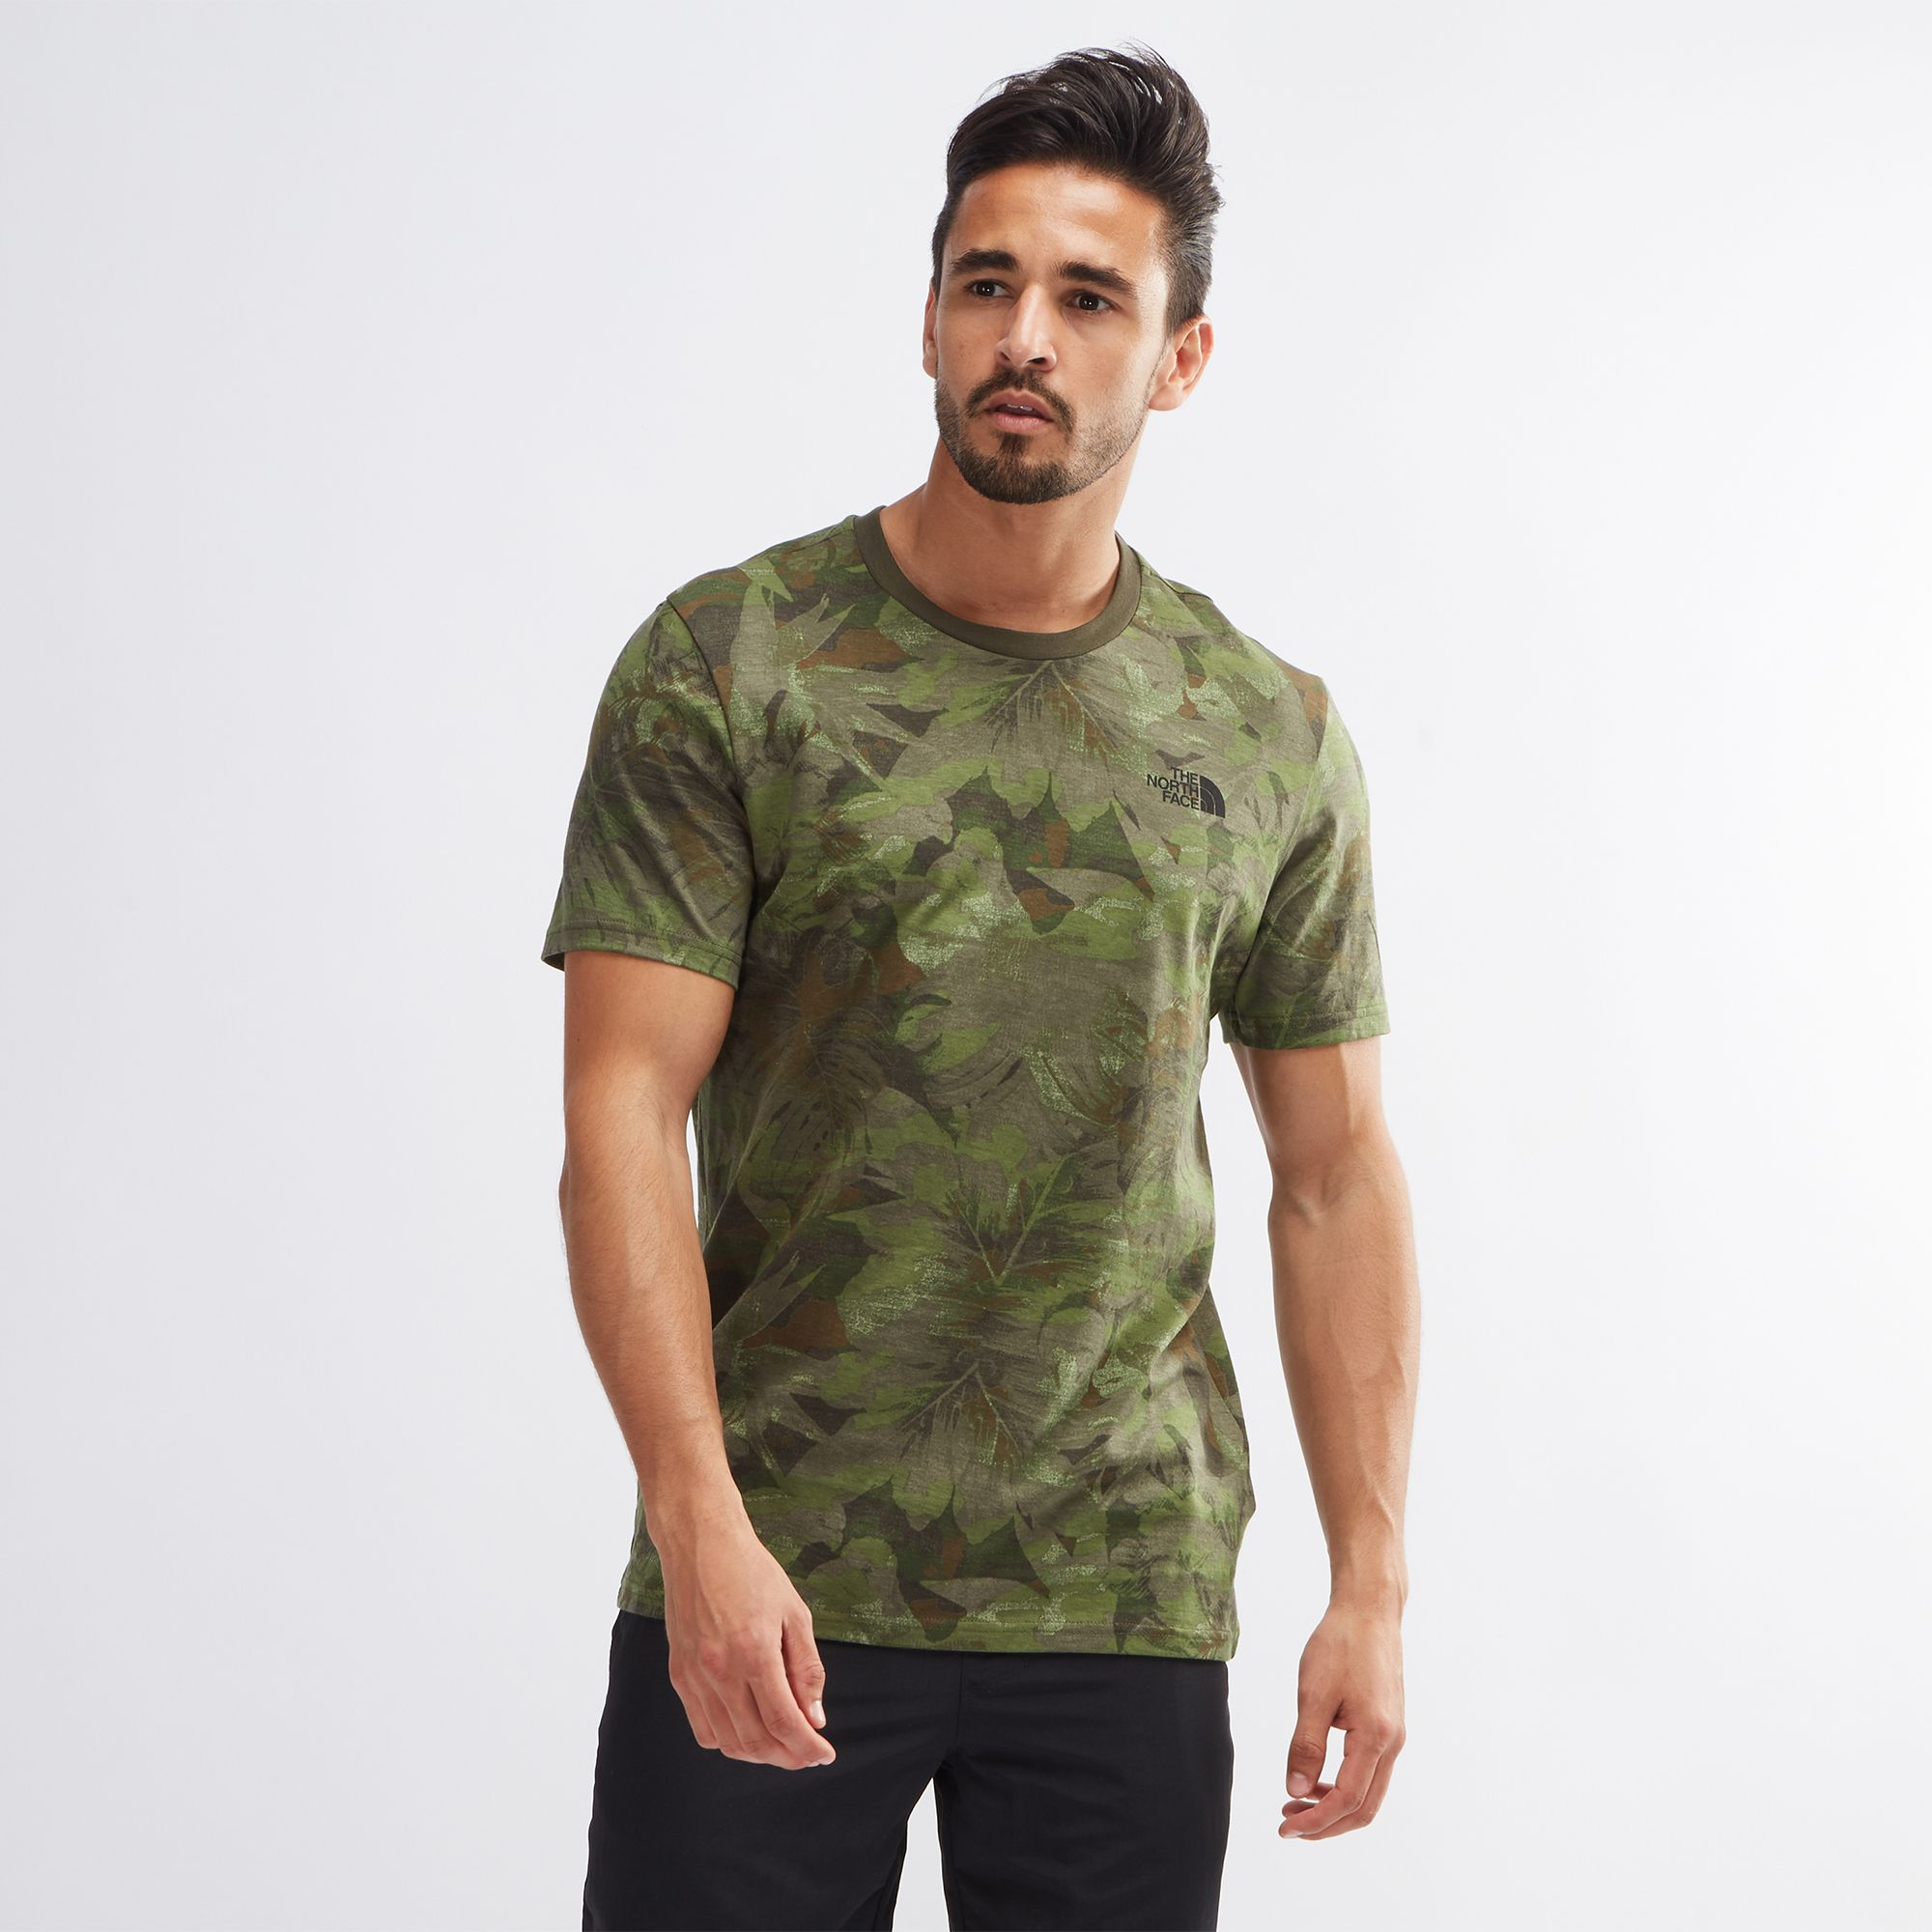 db879caa4 Shop Green The North Face Simple Dome T-Shirt for Mens by The North ...